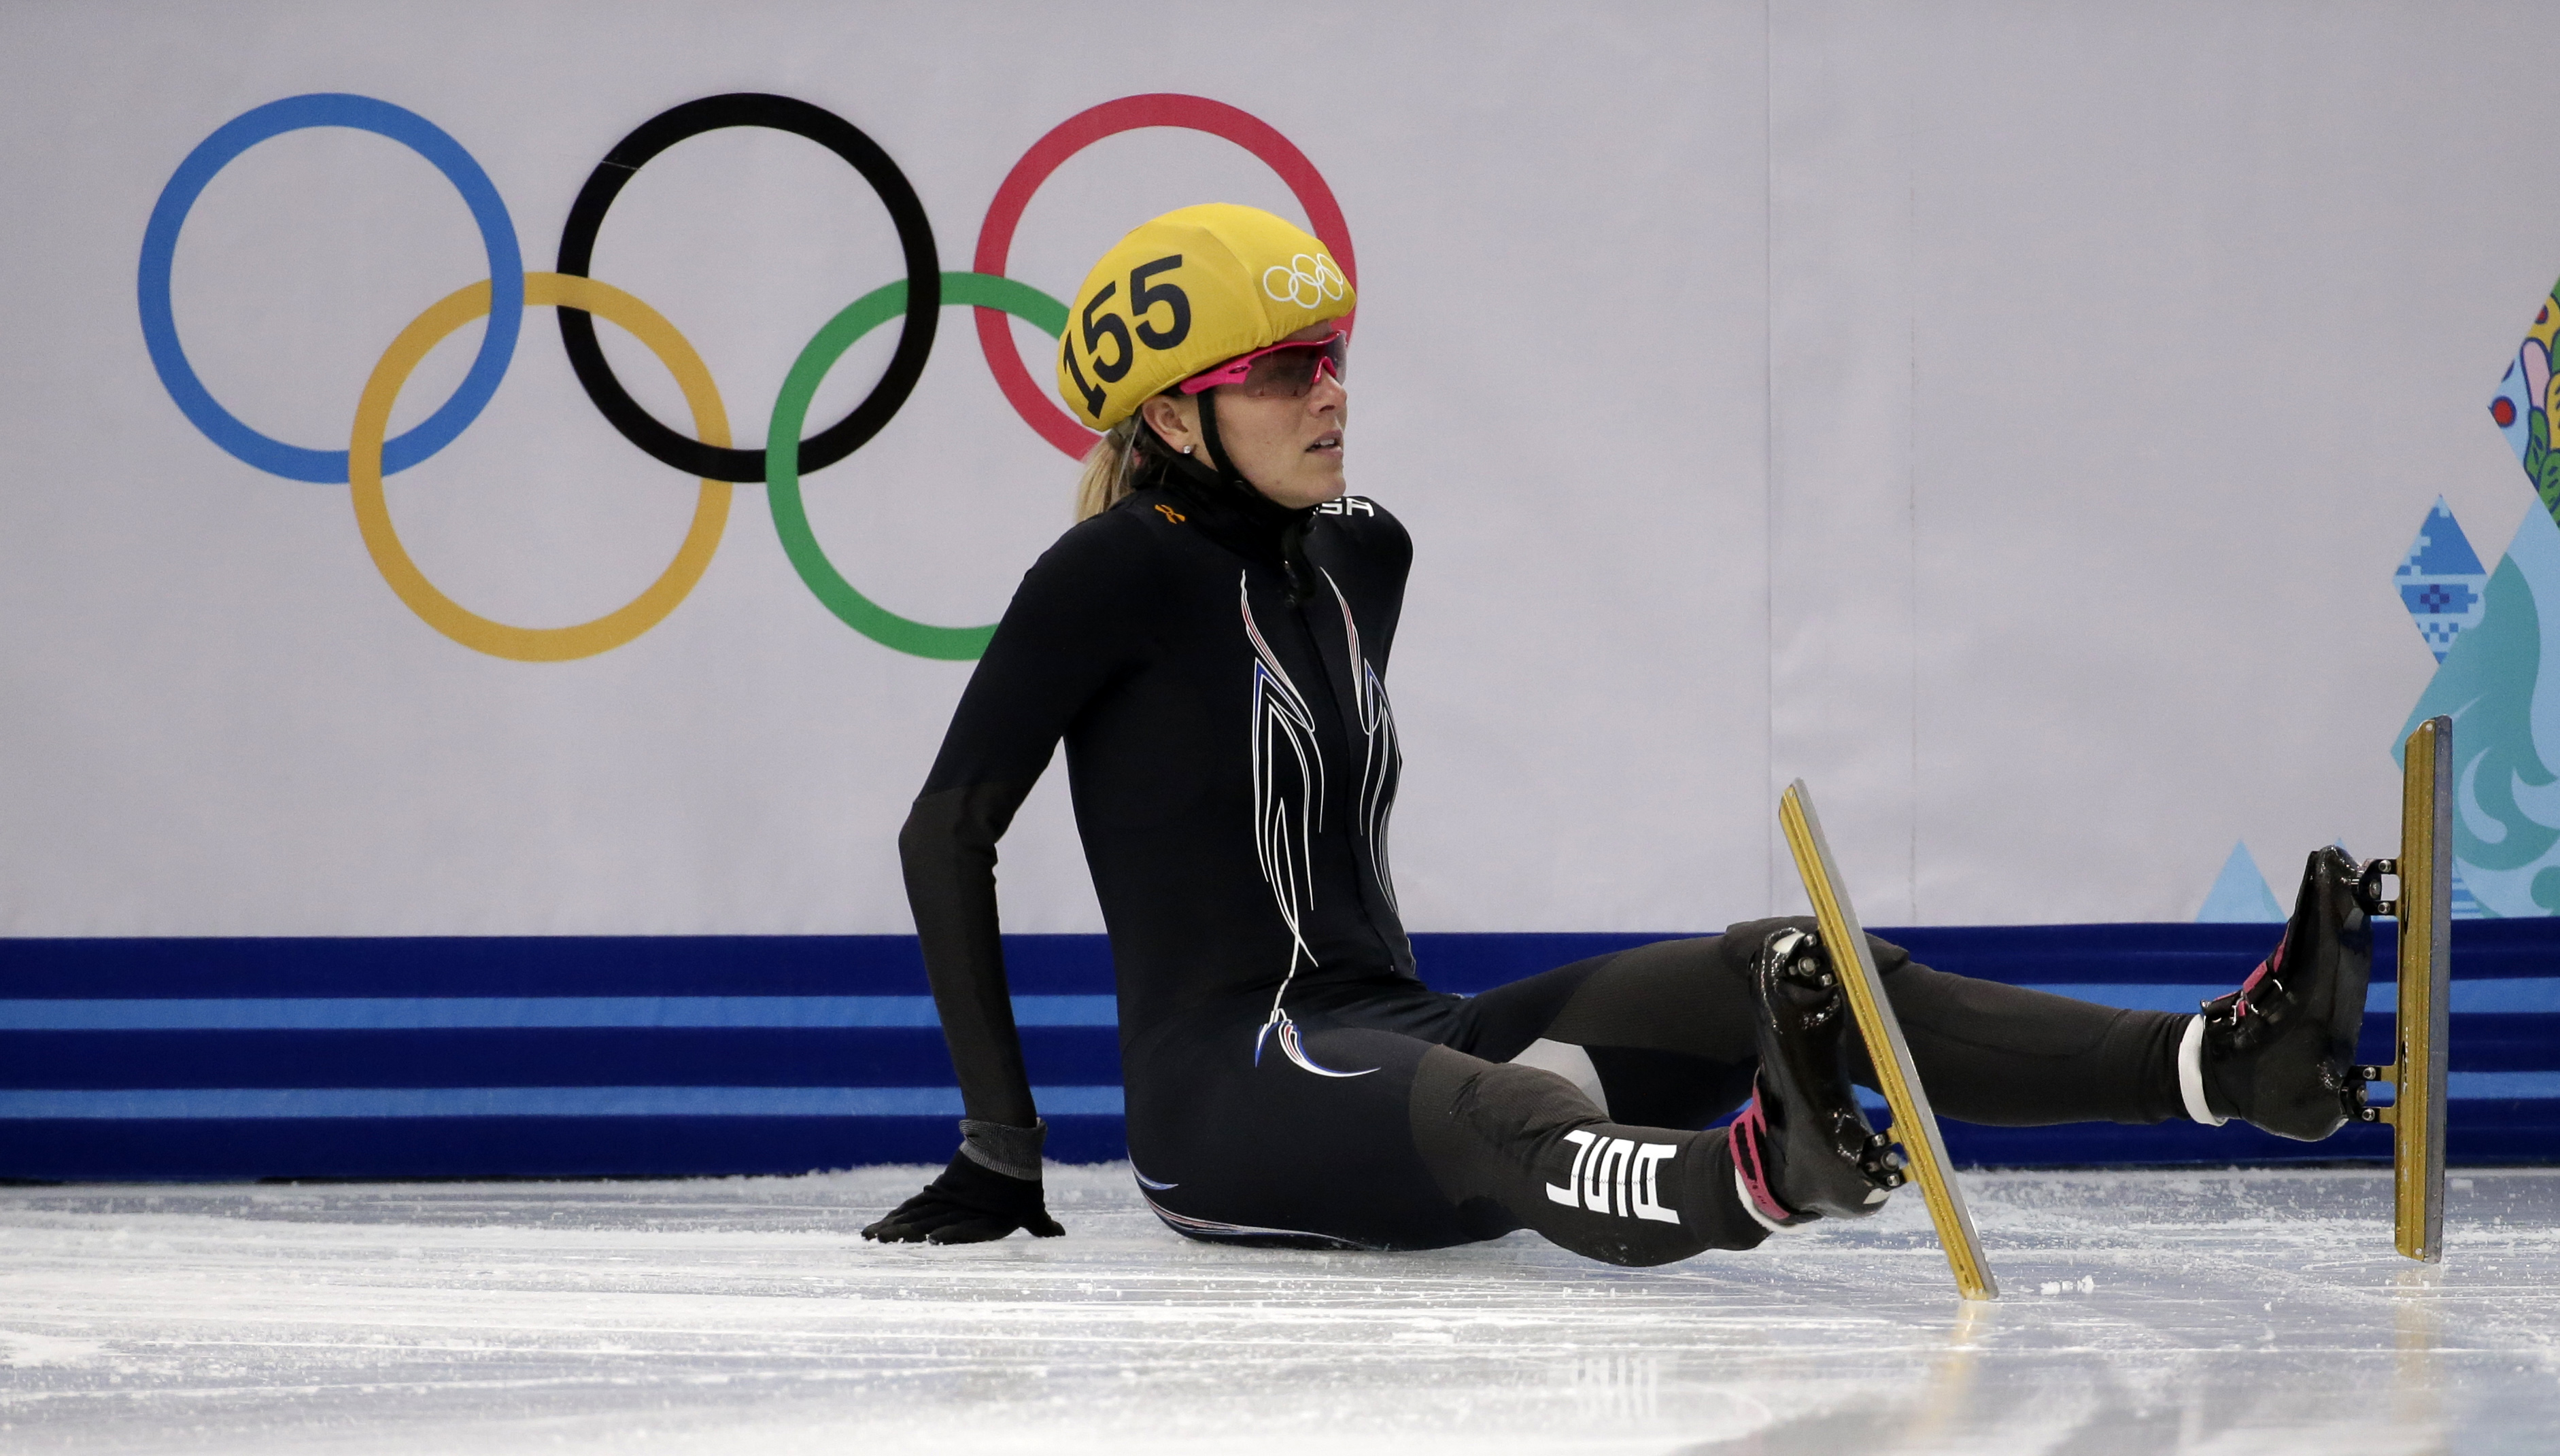 Emily Scott of the United States crashes out in a women's 1000m short track speedskating quarterfinal at the Iceberg Skating Palace during the 2014 Winter Olympics, Friday, Feb. 21, 2014, in Sochi, Russia. (AP Photo/Bernat Armangue)